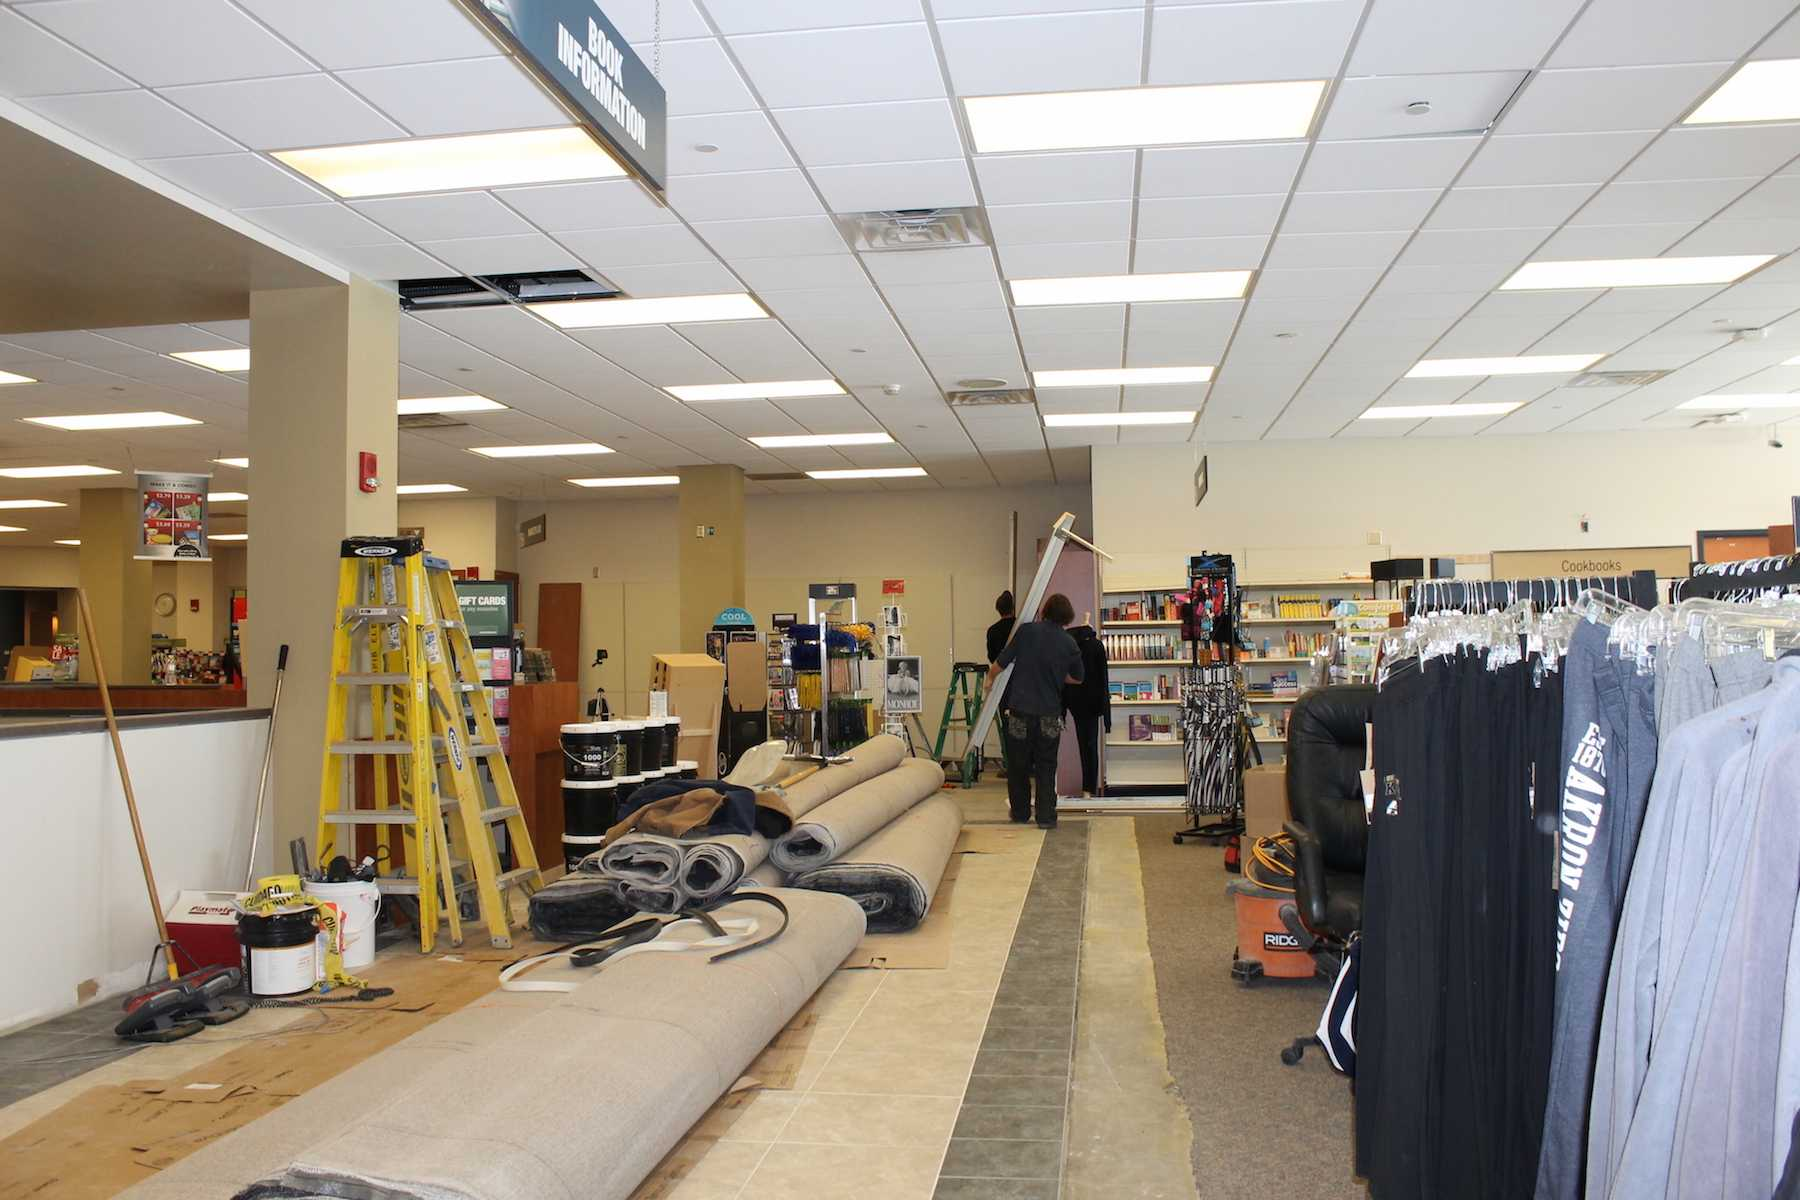 Workers install new carpet and build information center.